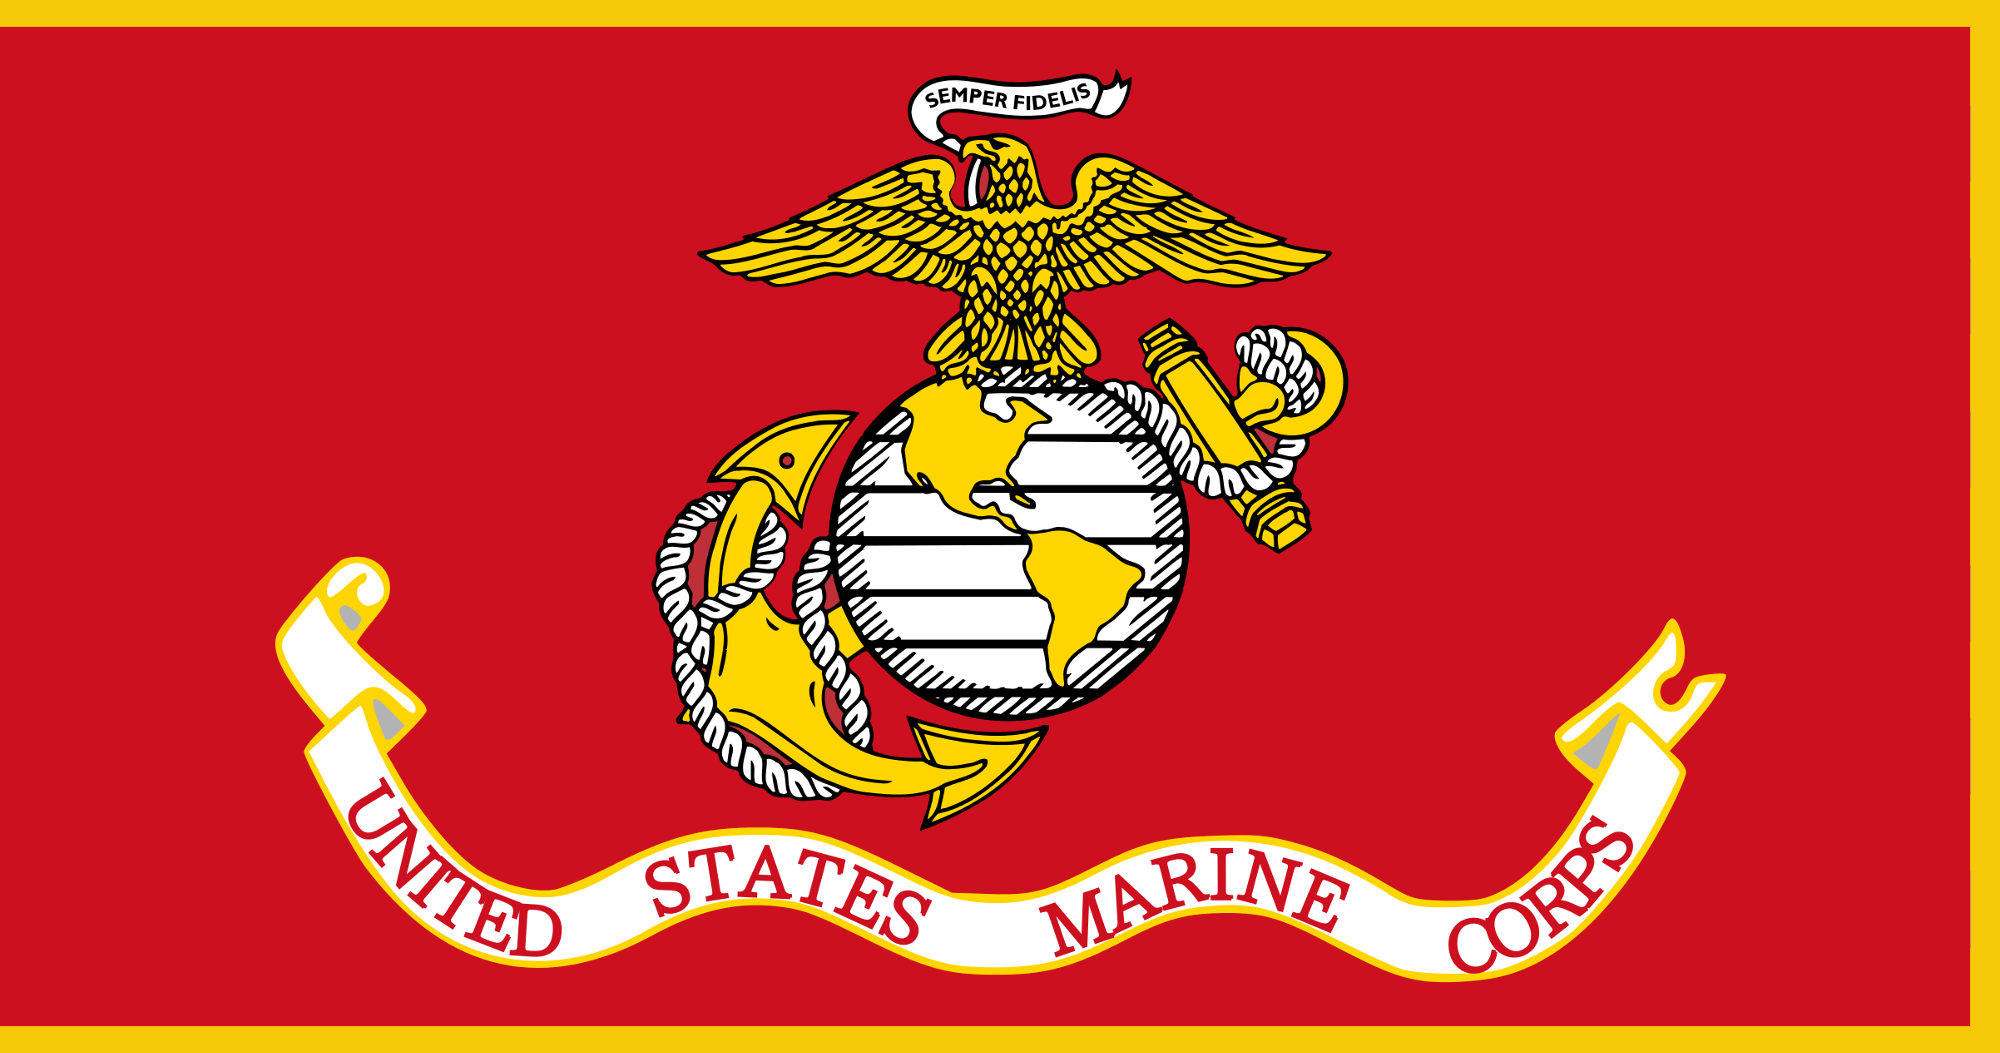 2000x1053 Fileflag Of The United States Marine Corps (With Fringe).png